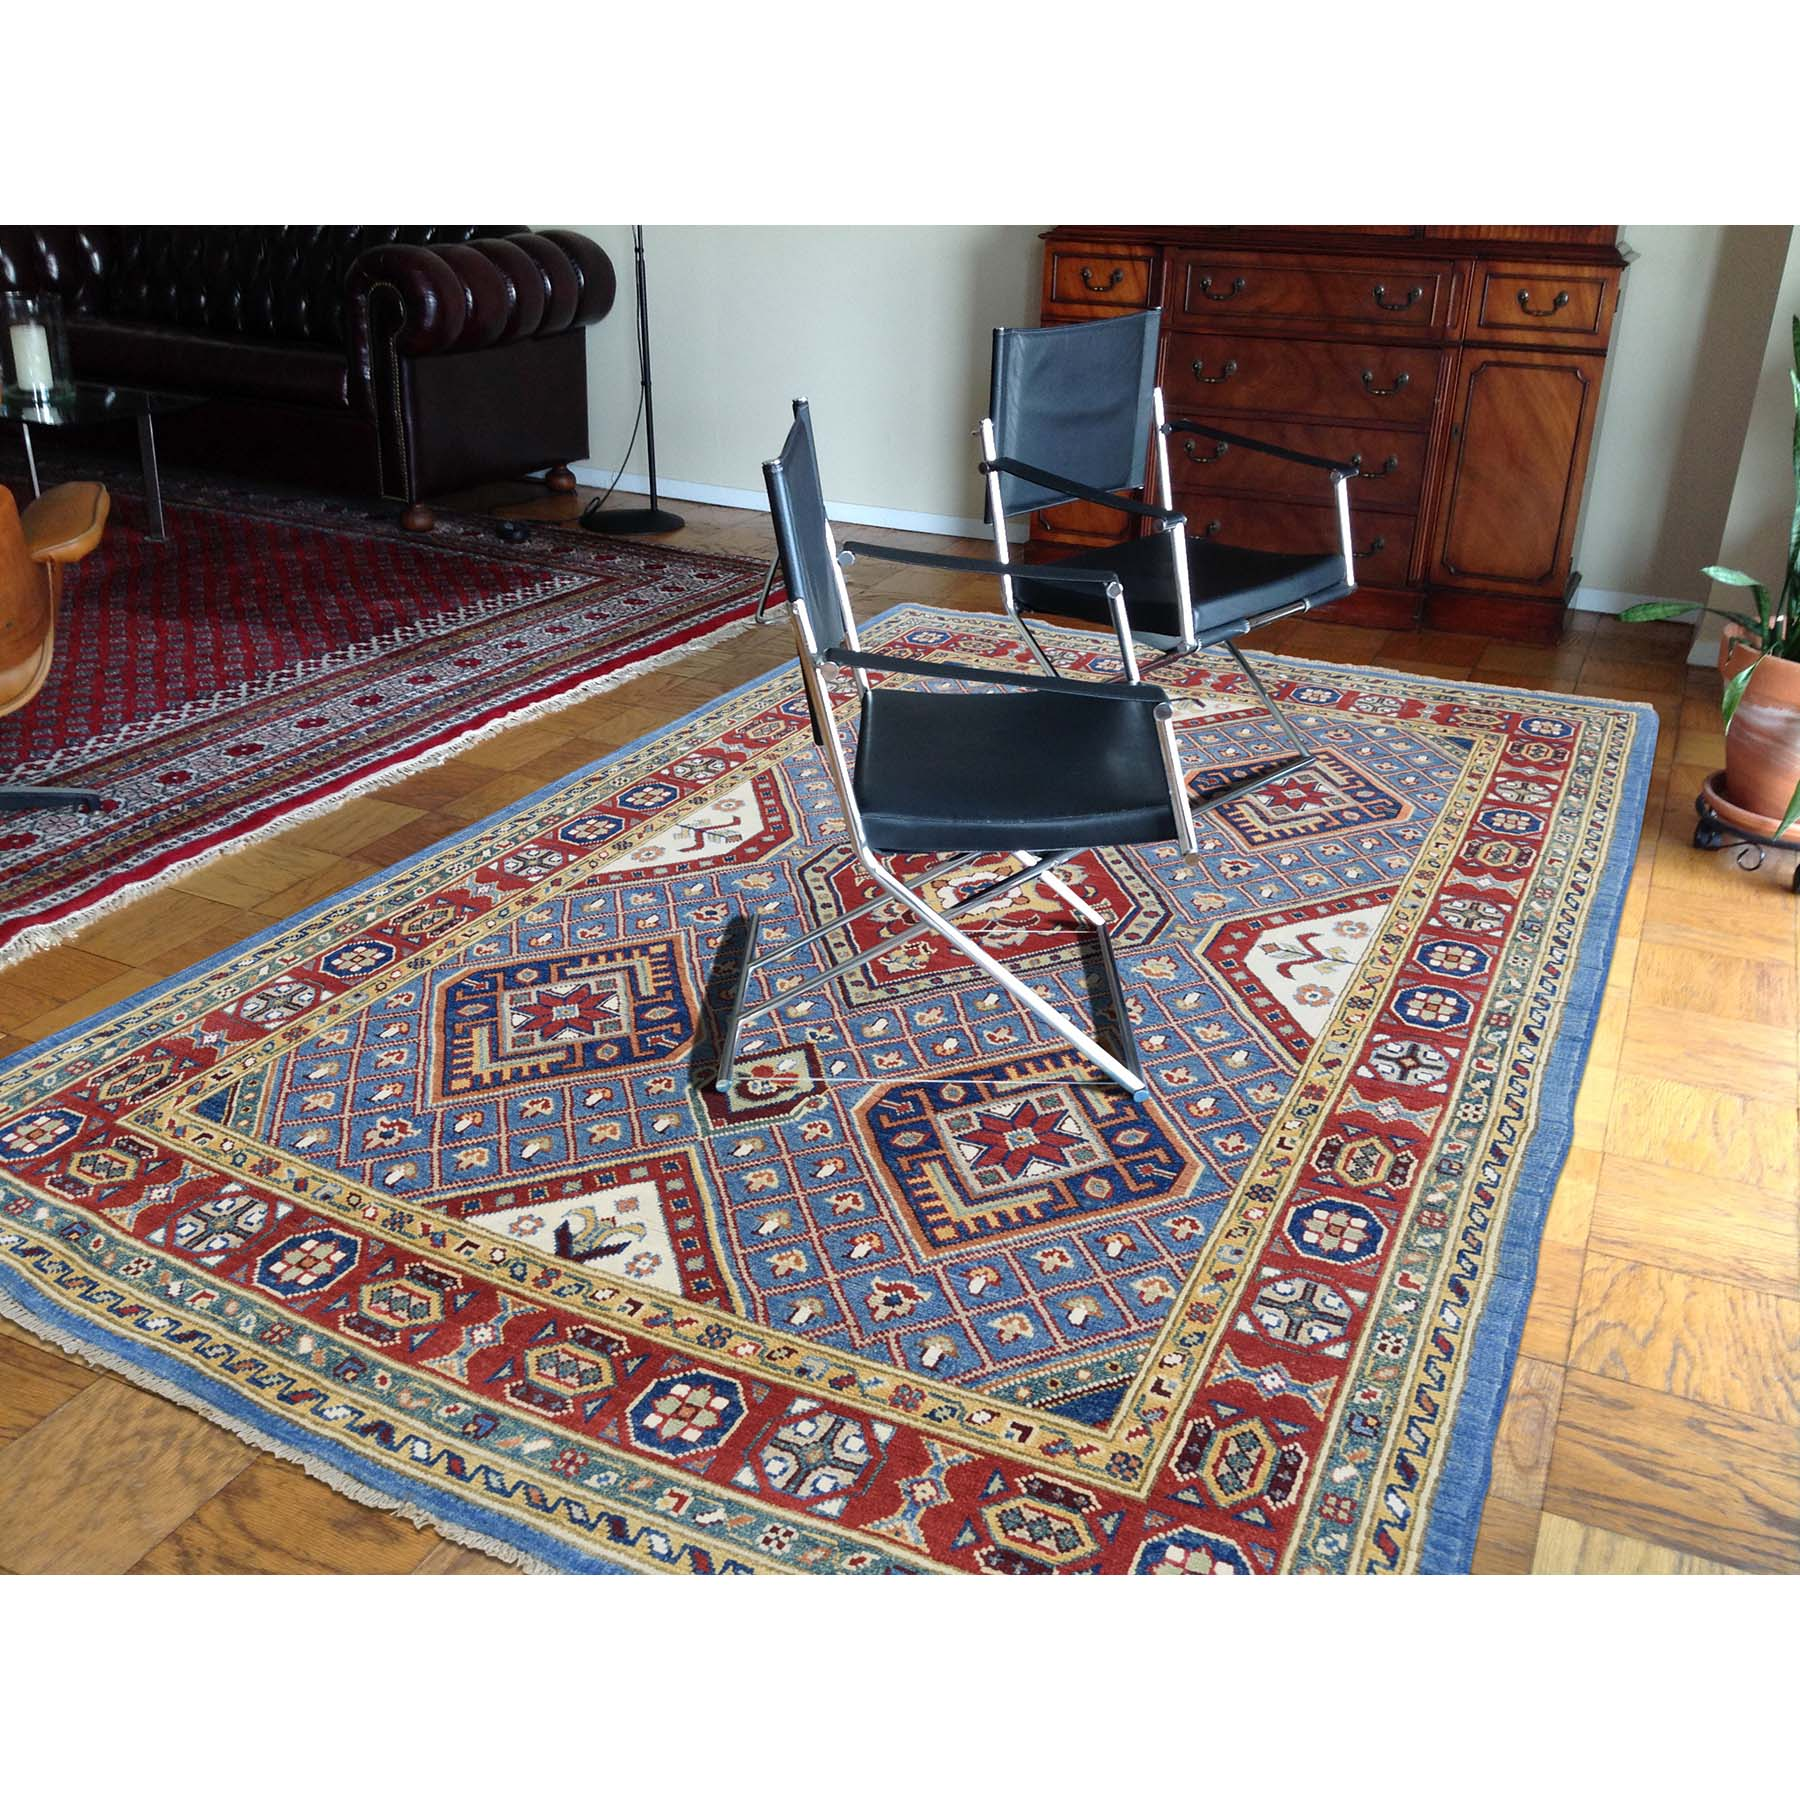 5-1--x6-6-- Sky Blue Special Kazak Pure Wool Hand-Knotted Oriental Rug